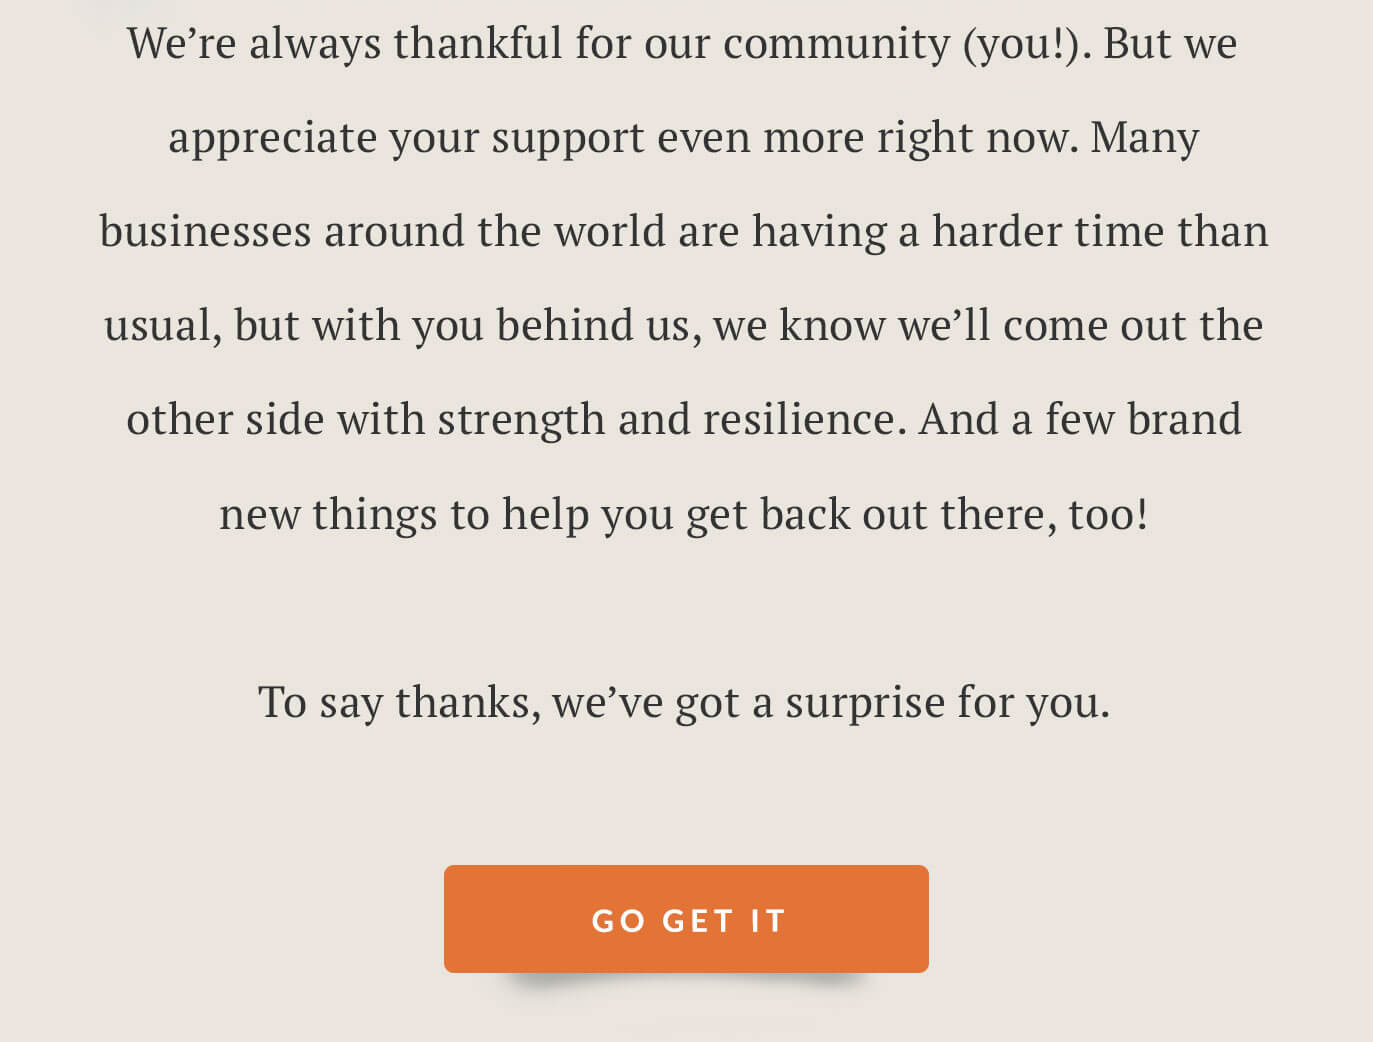 We're always thankful for our community (you!). But we appreciate your support even more right now. Many businesses around the world are having a harder time than usual, but with you behind us, we know we'll come out the other side with strength and resilience. And a few brand new things to help you get back out there, too!   To say thanks, we've got a surprise for you.